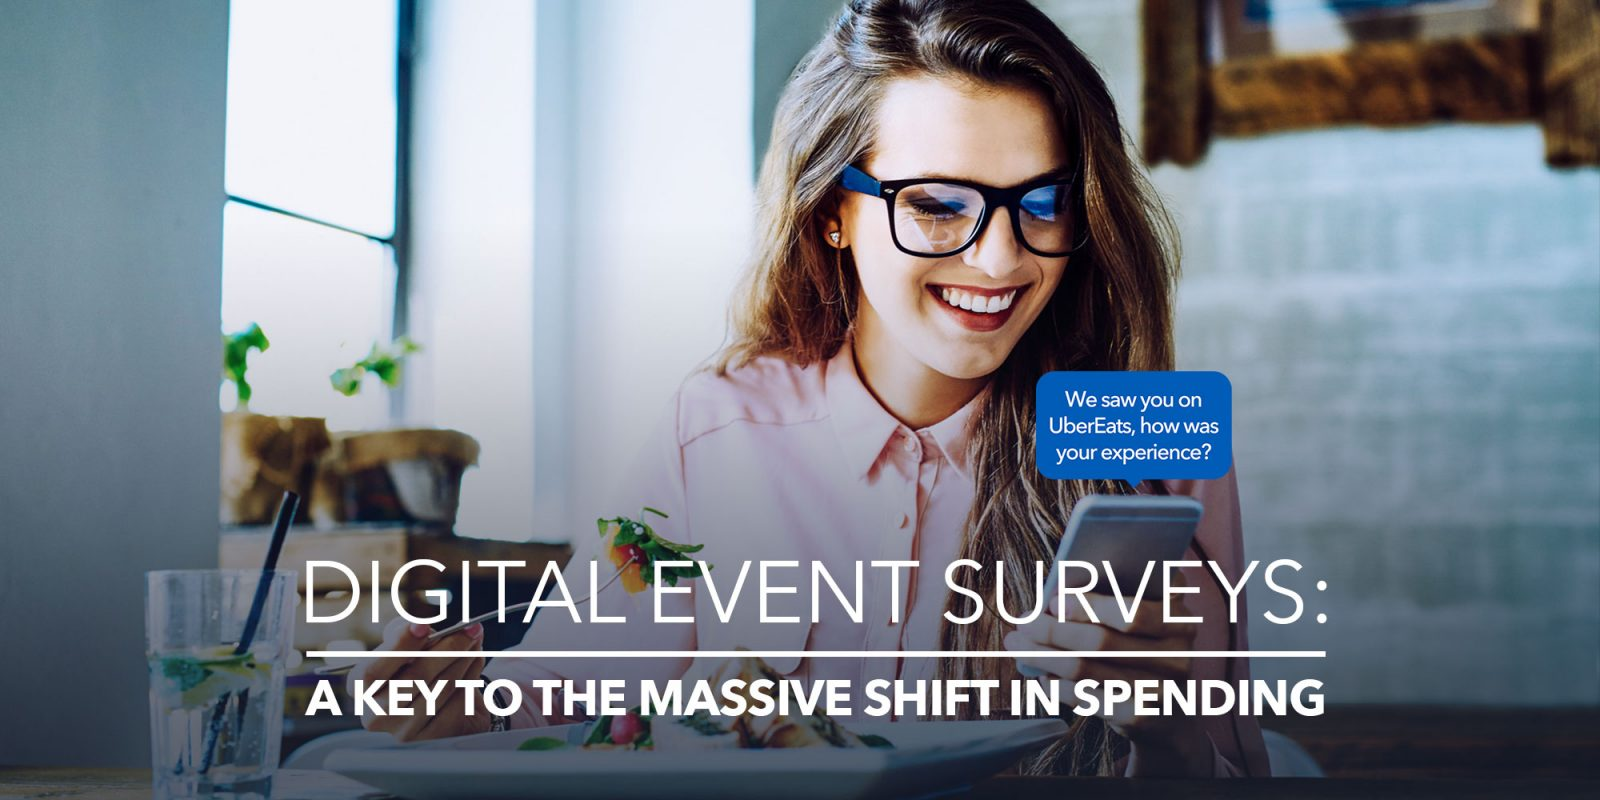 Digital Event Surveys: A Key to the Massive Shift in Spending